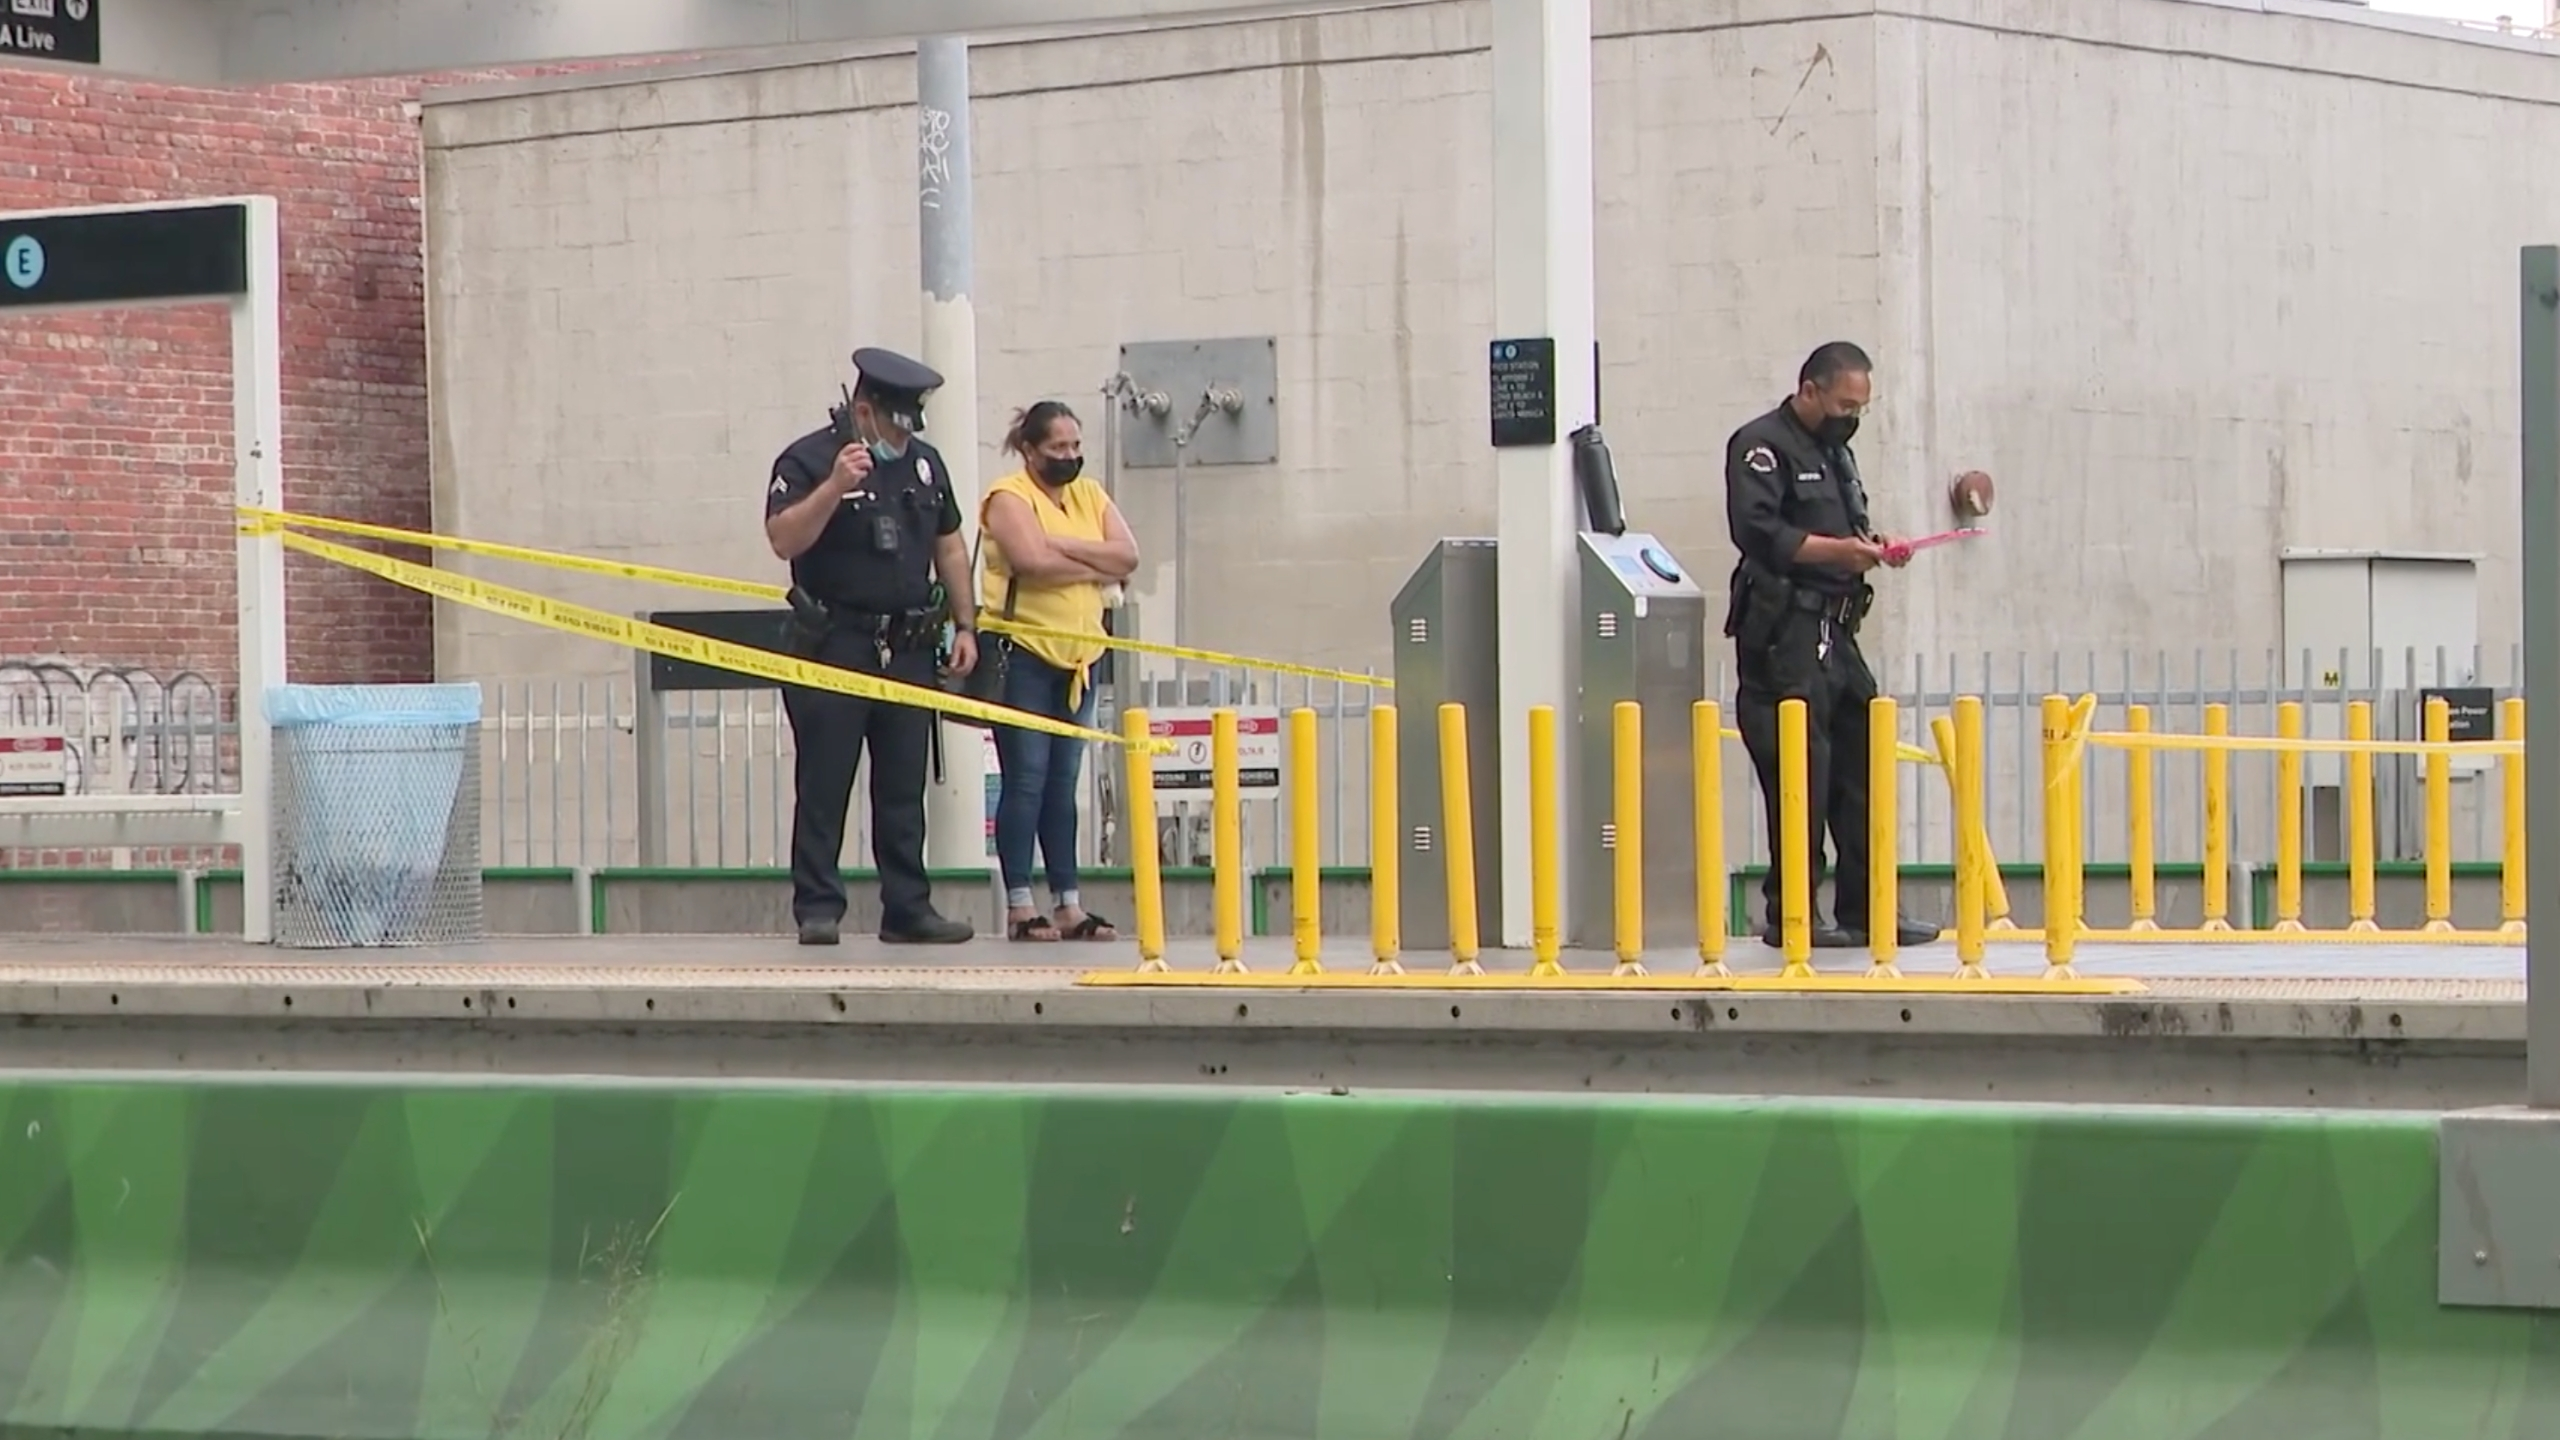 Police respond to investigate a stabbing at a Metro station in downtown Los Angeles on June 22, 2021. (KTLA)